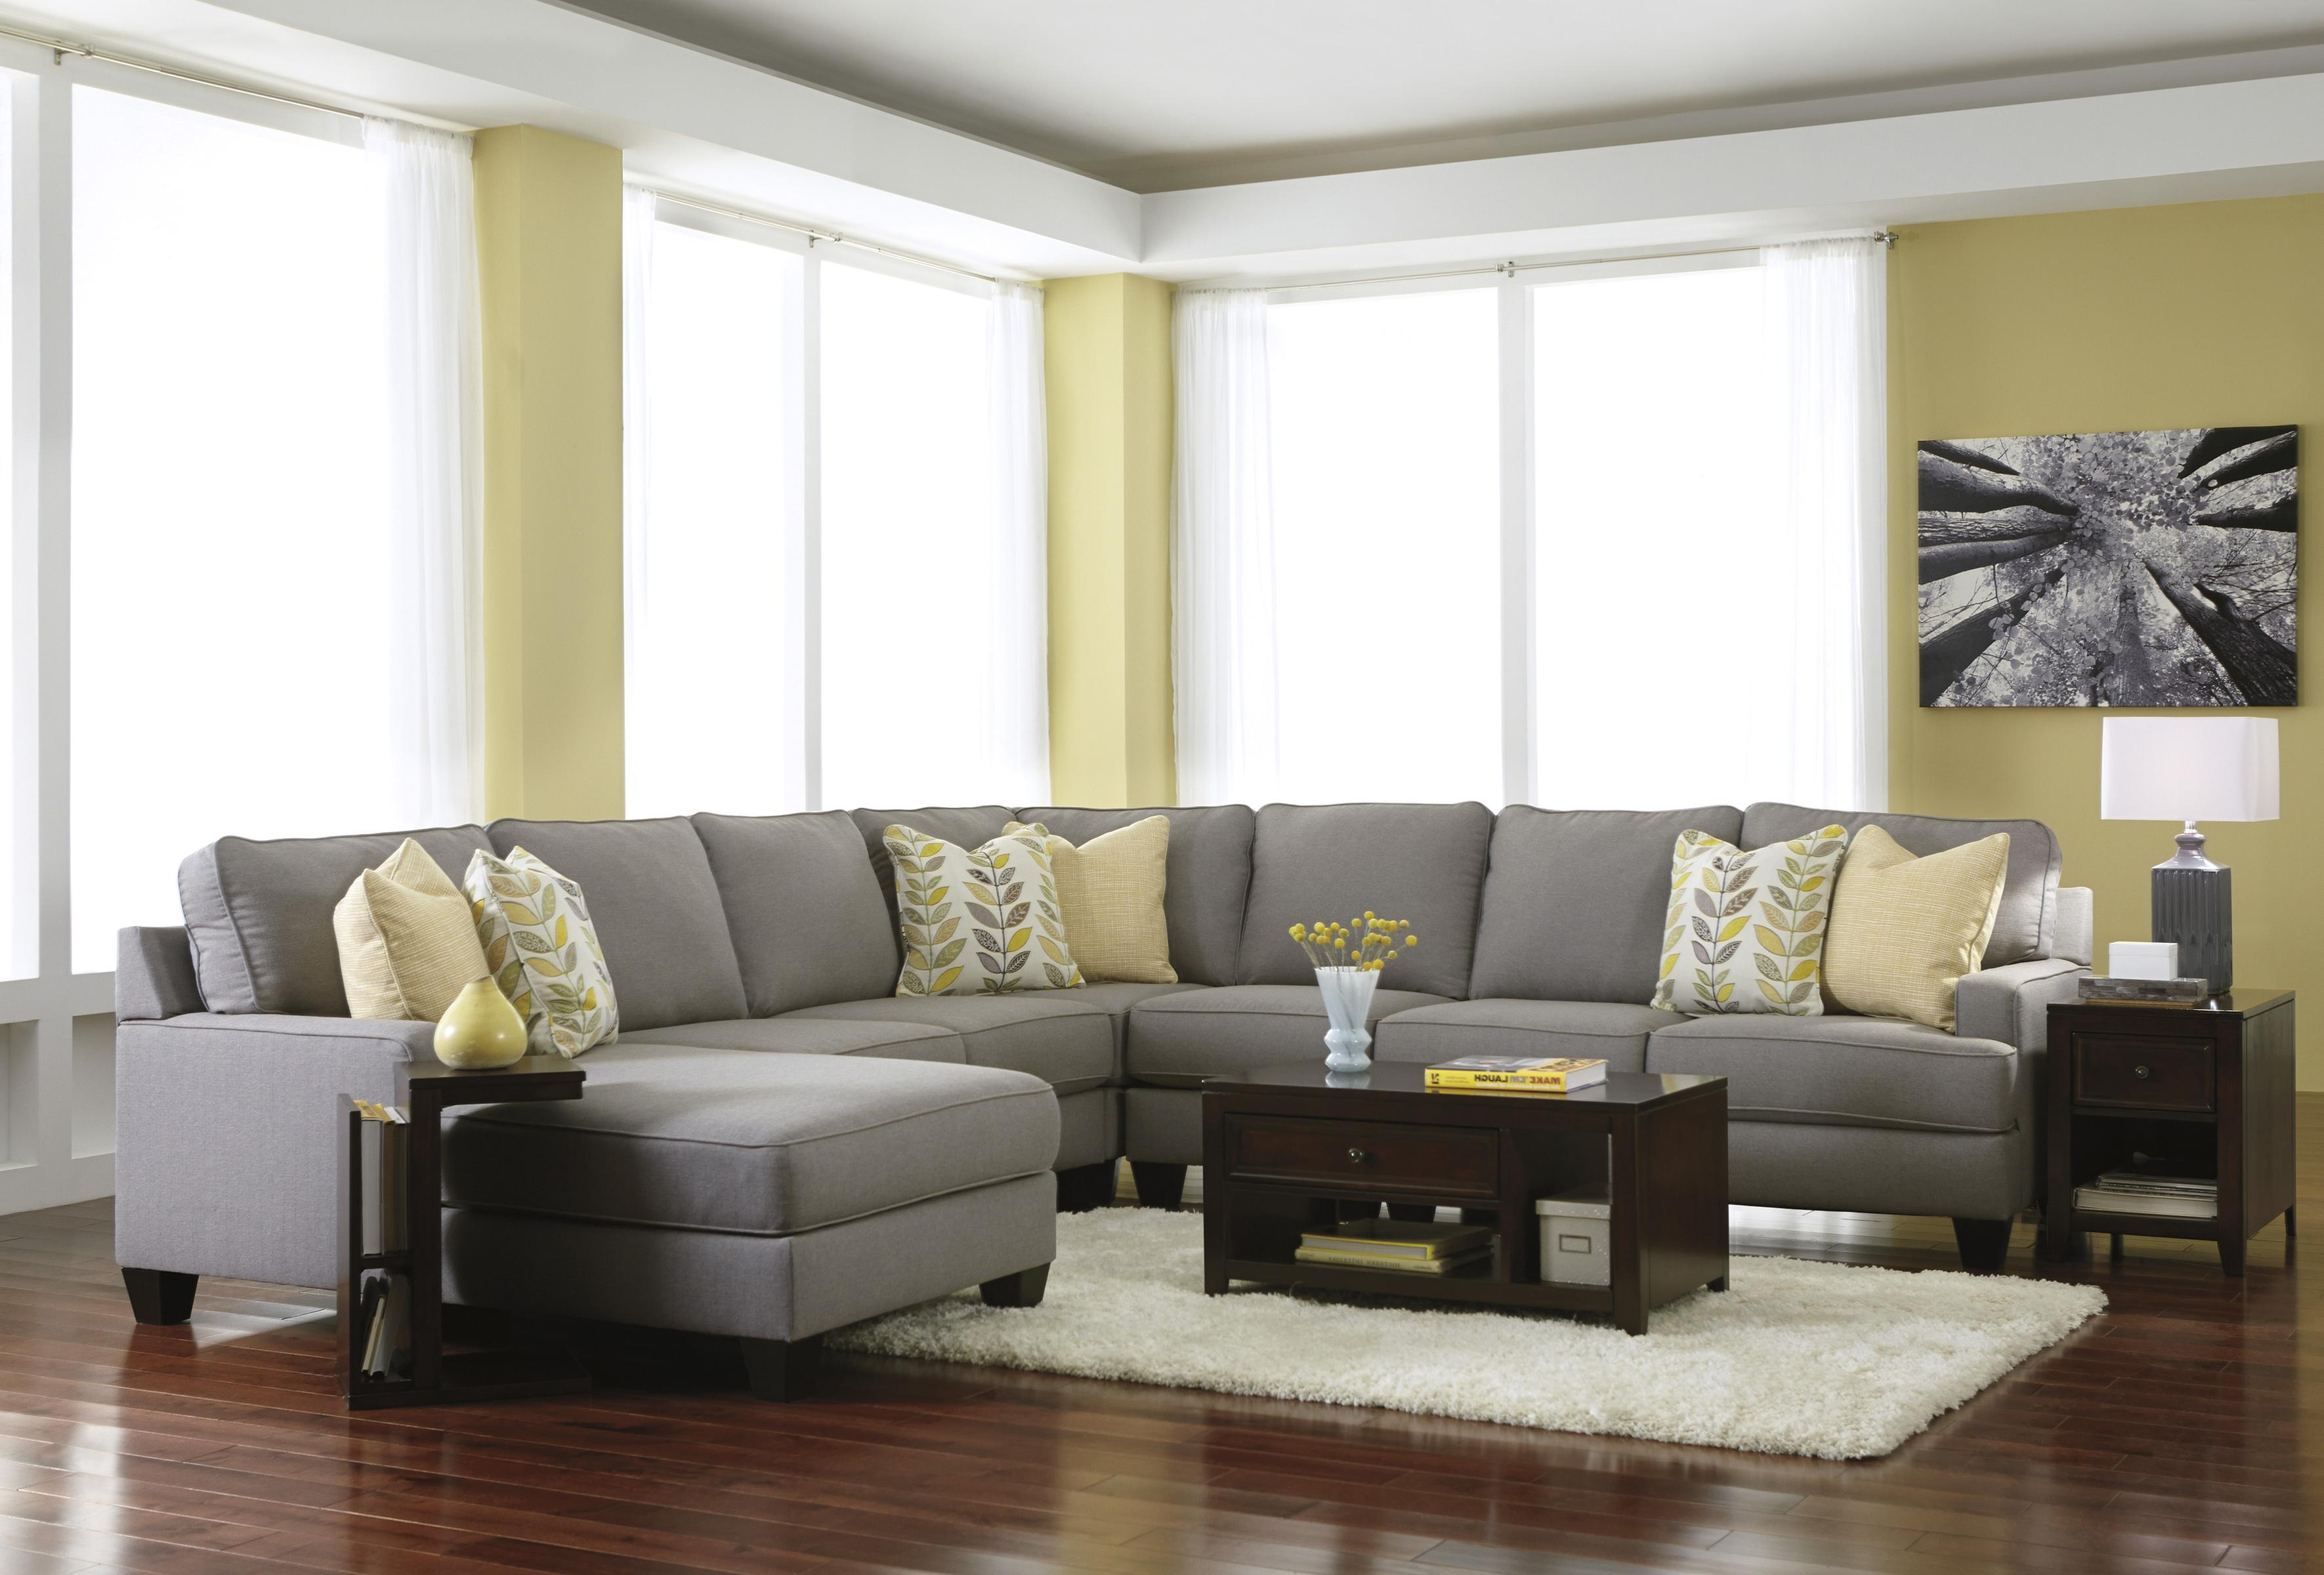 5 Piece Sectional Sofa With Left Chaise